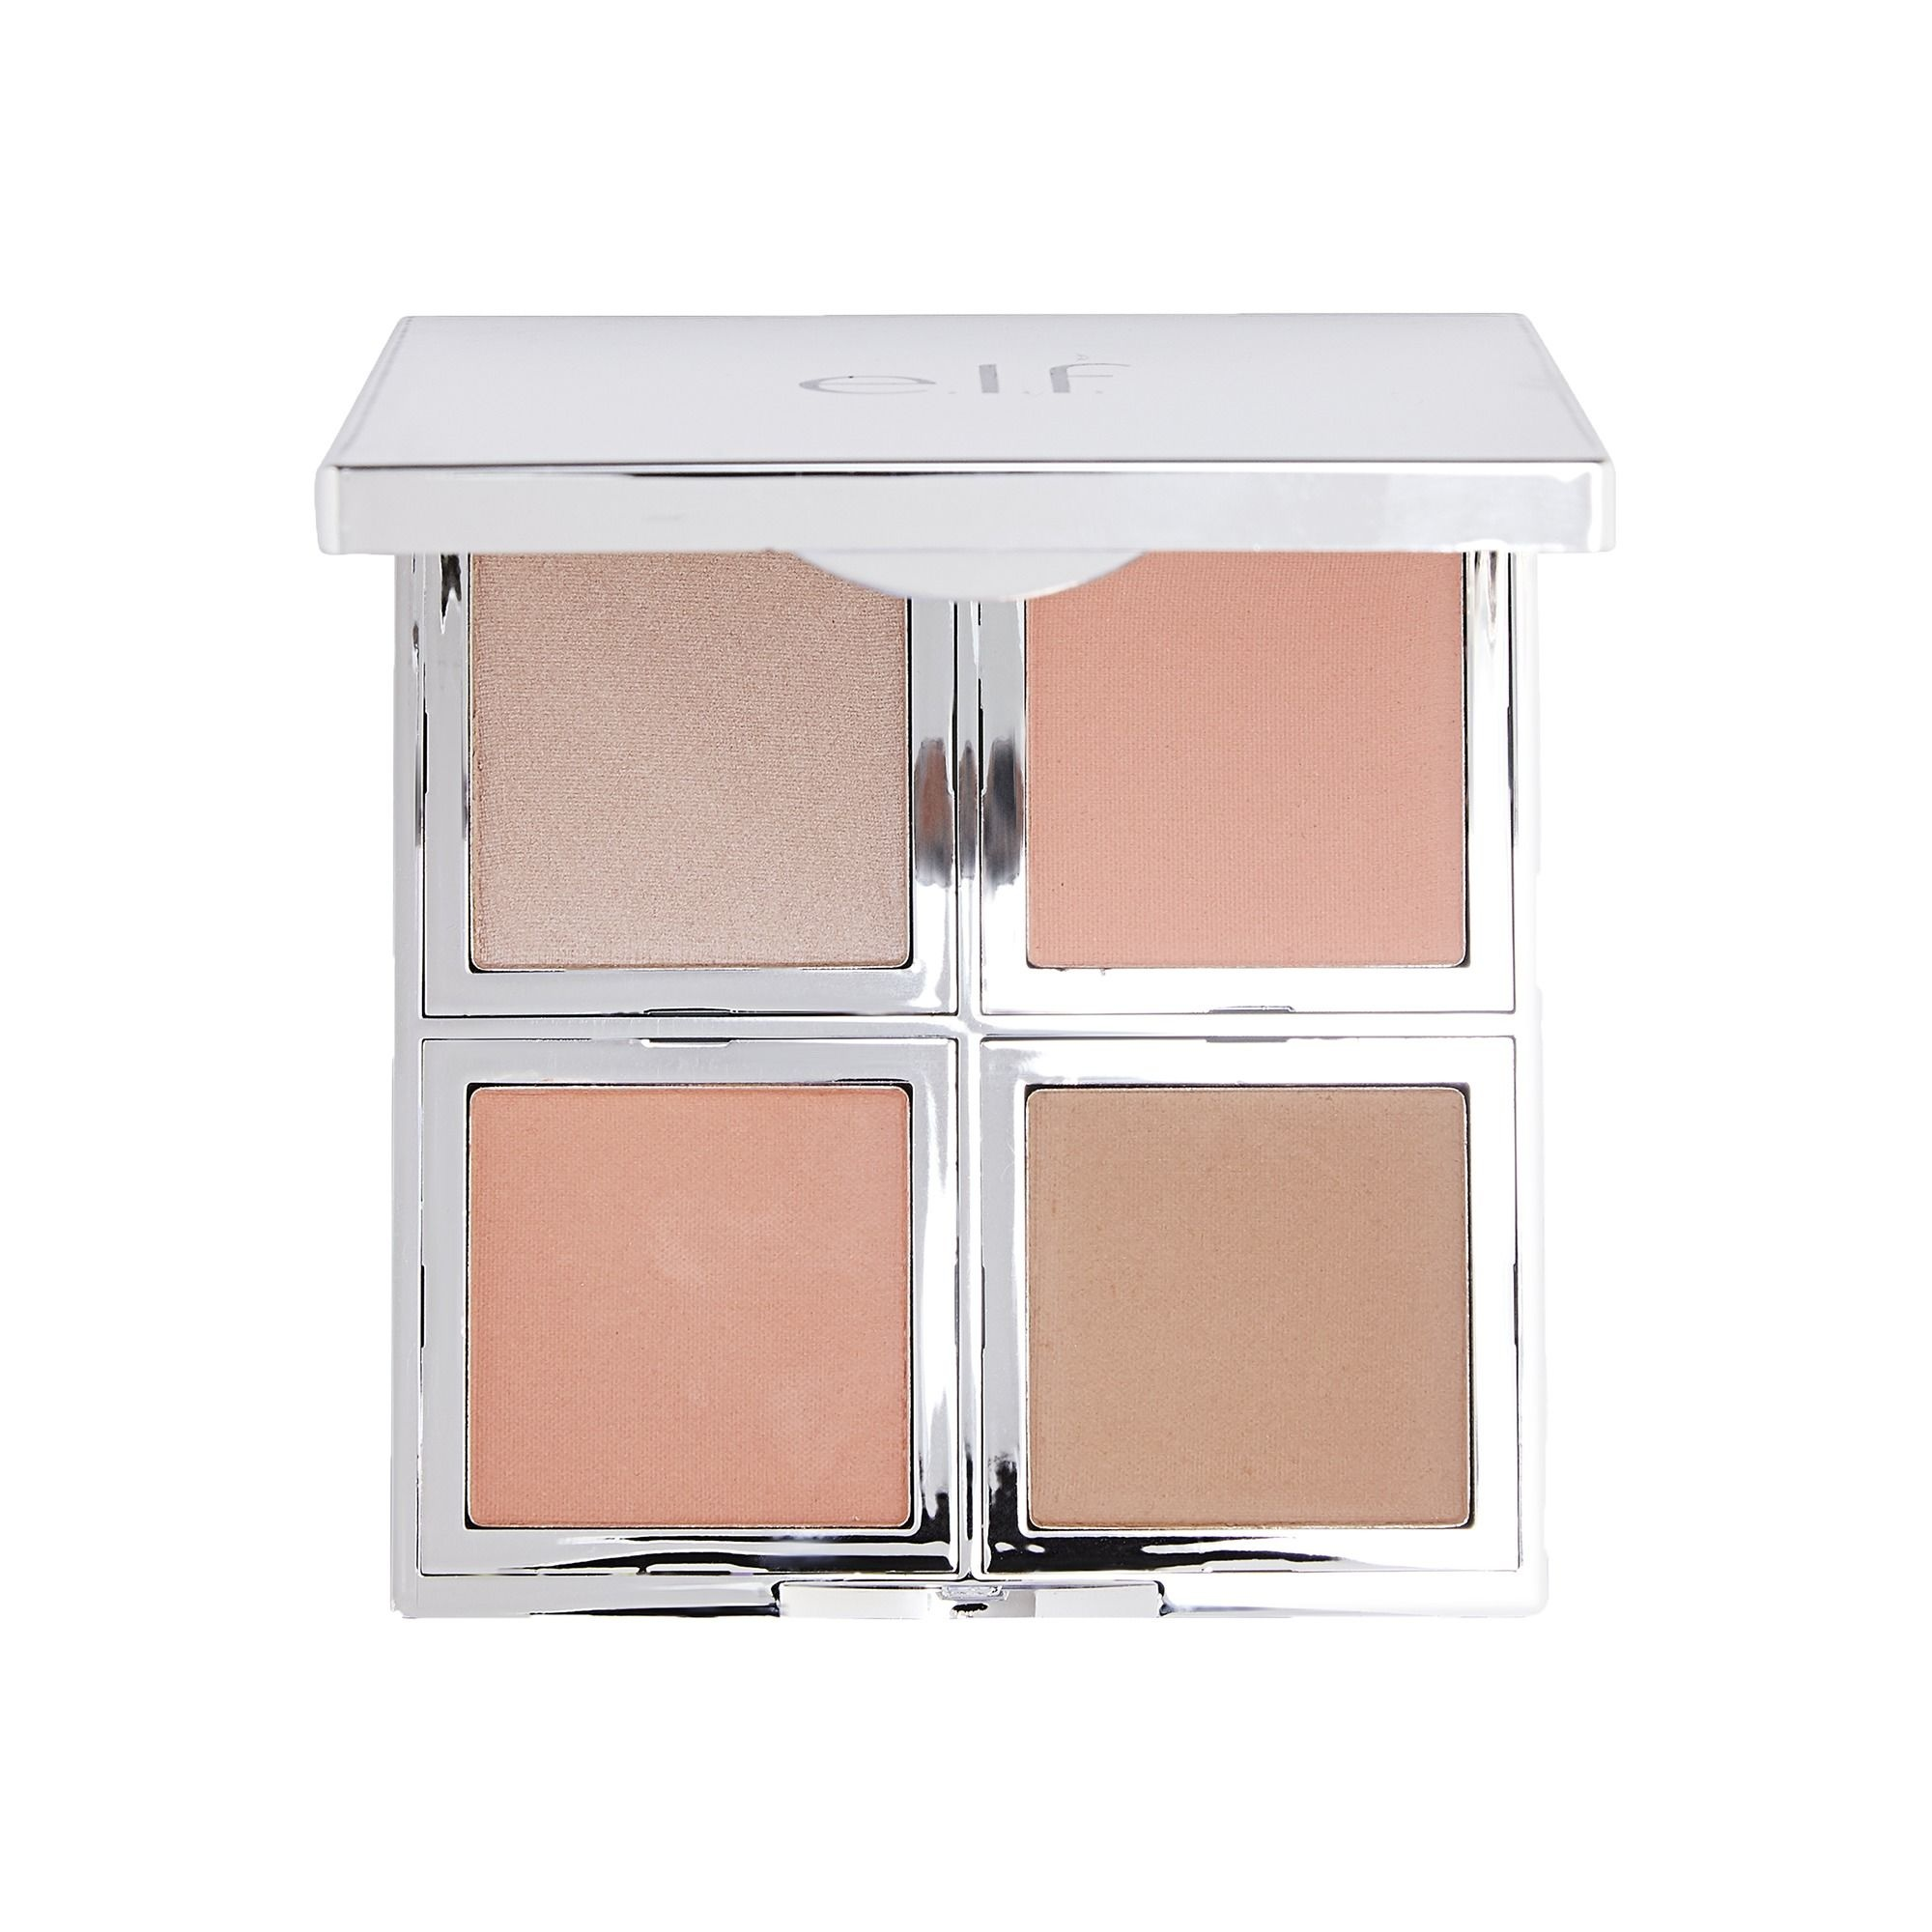 e.l.f. Cosmetics Beautifully Bare Natural Glow Face Palette